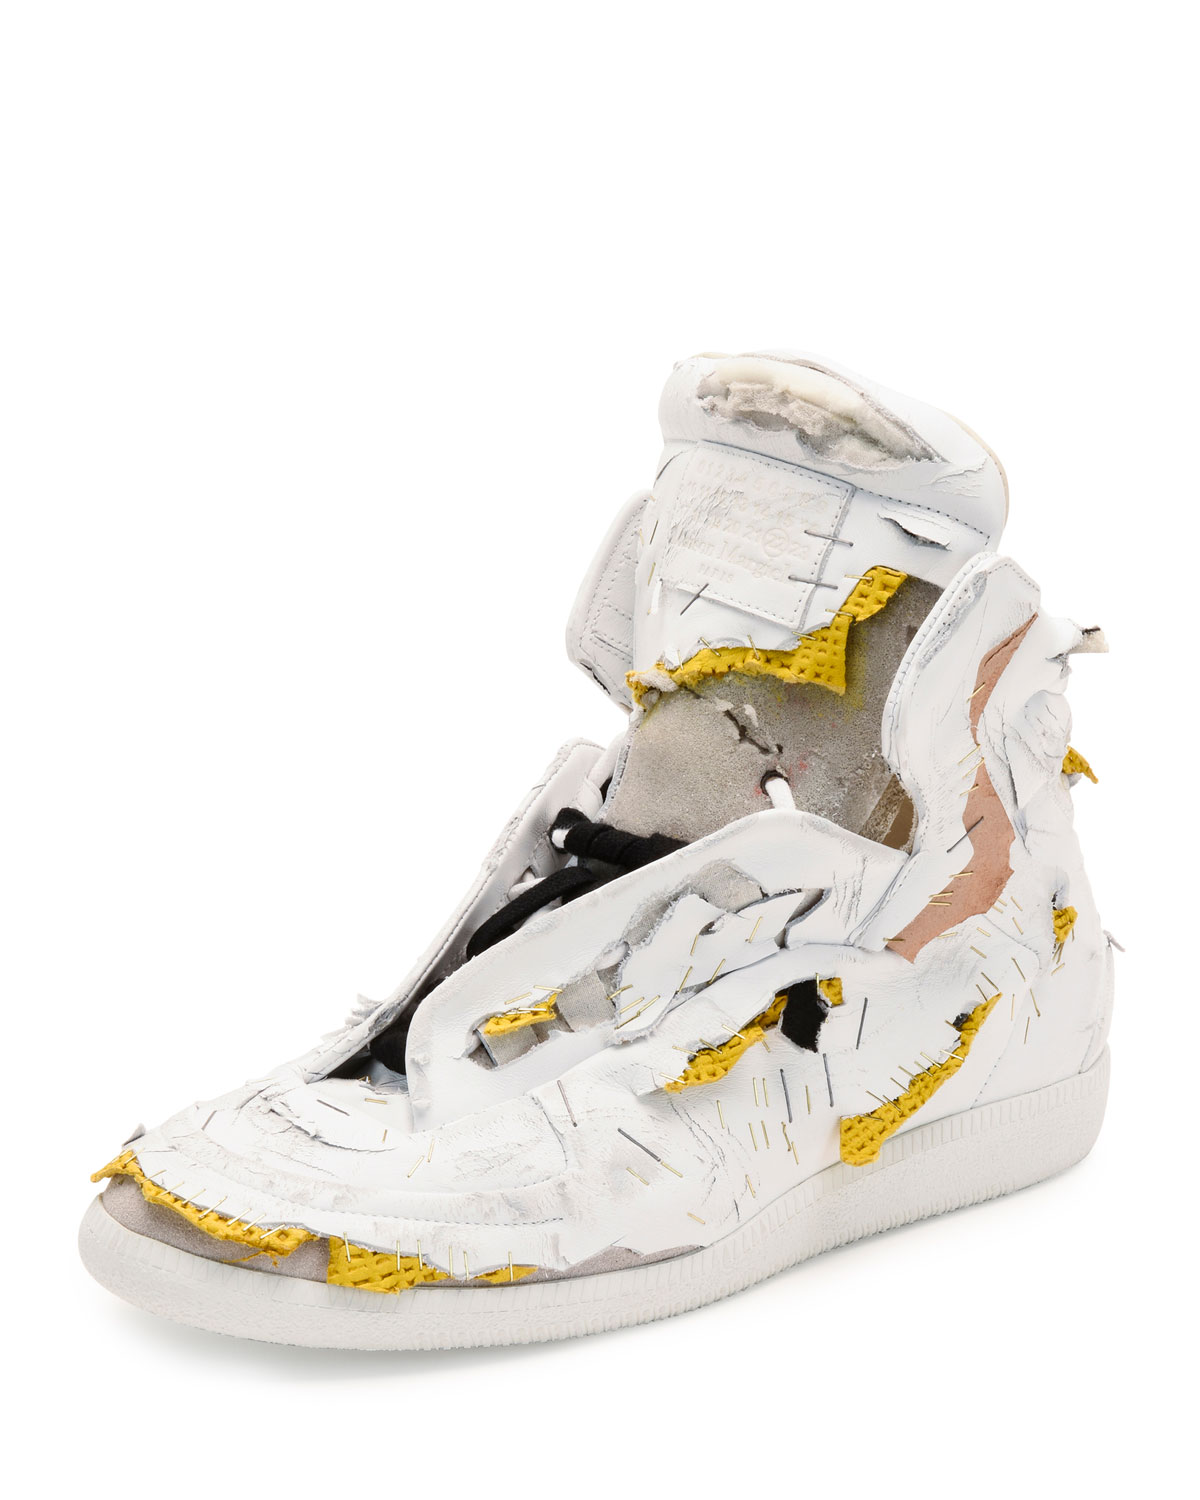 cce1f151224 Future Destroyed High-Top Sneaker, White/Yellow